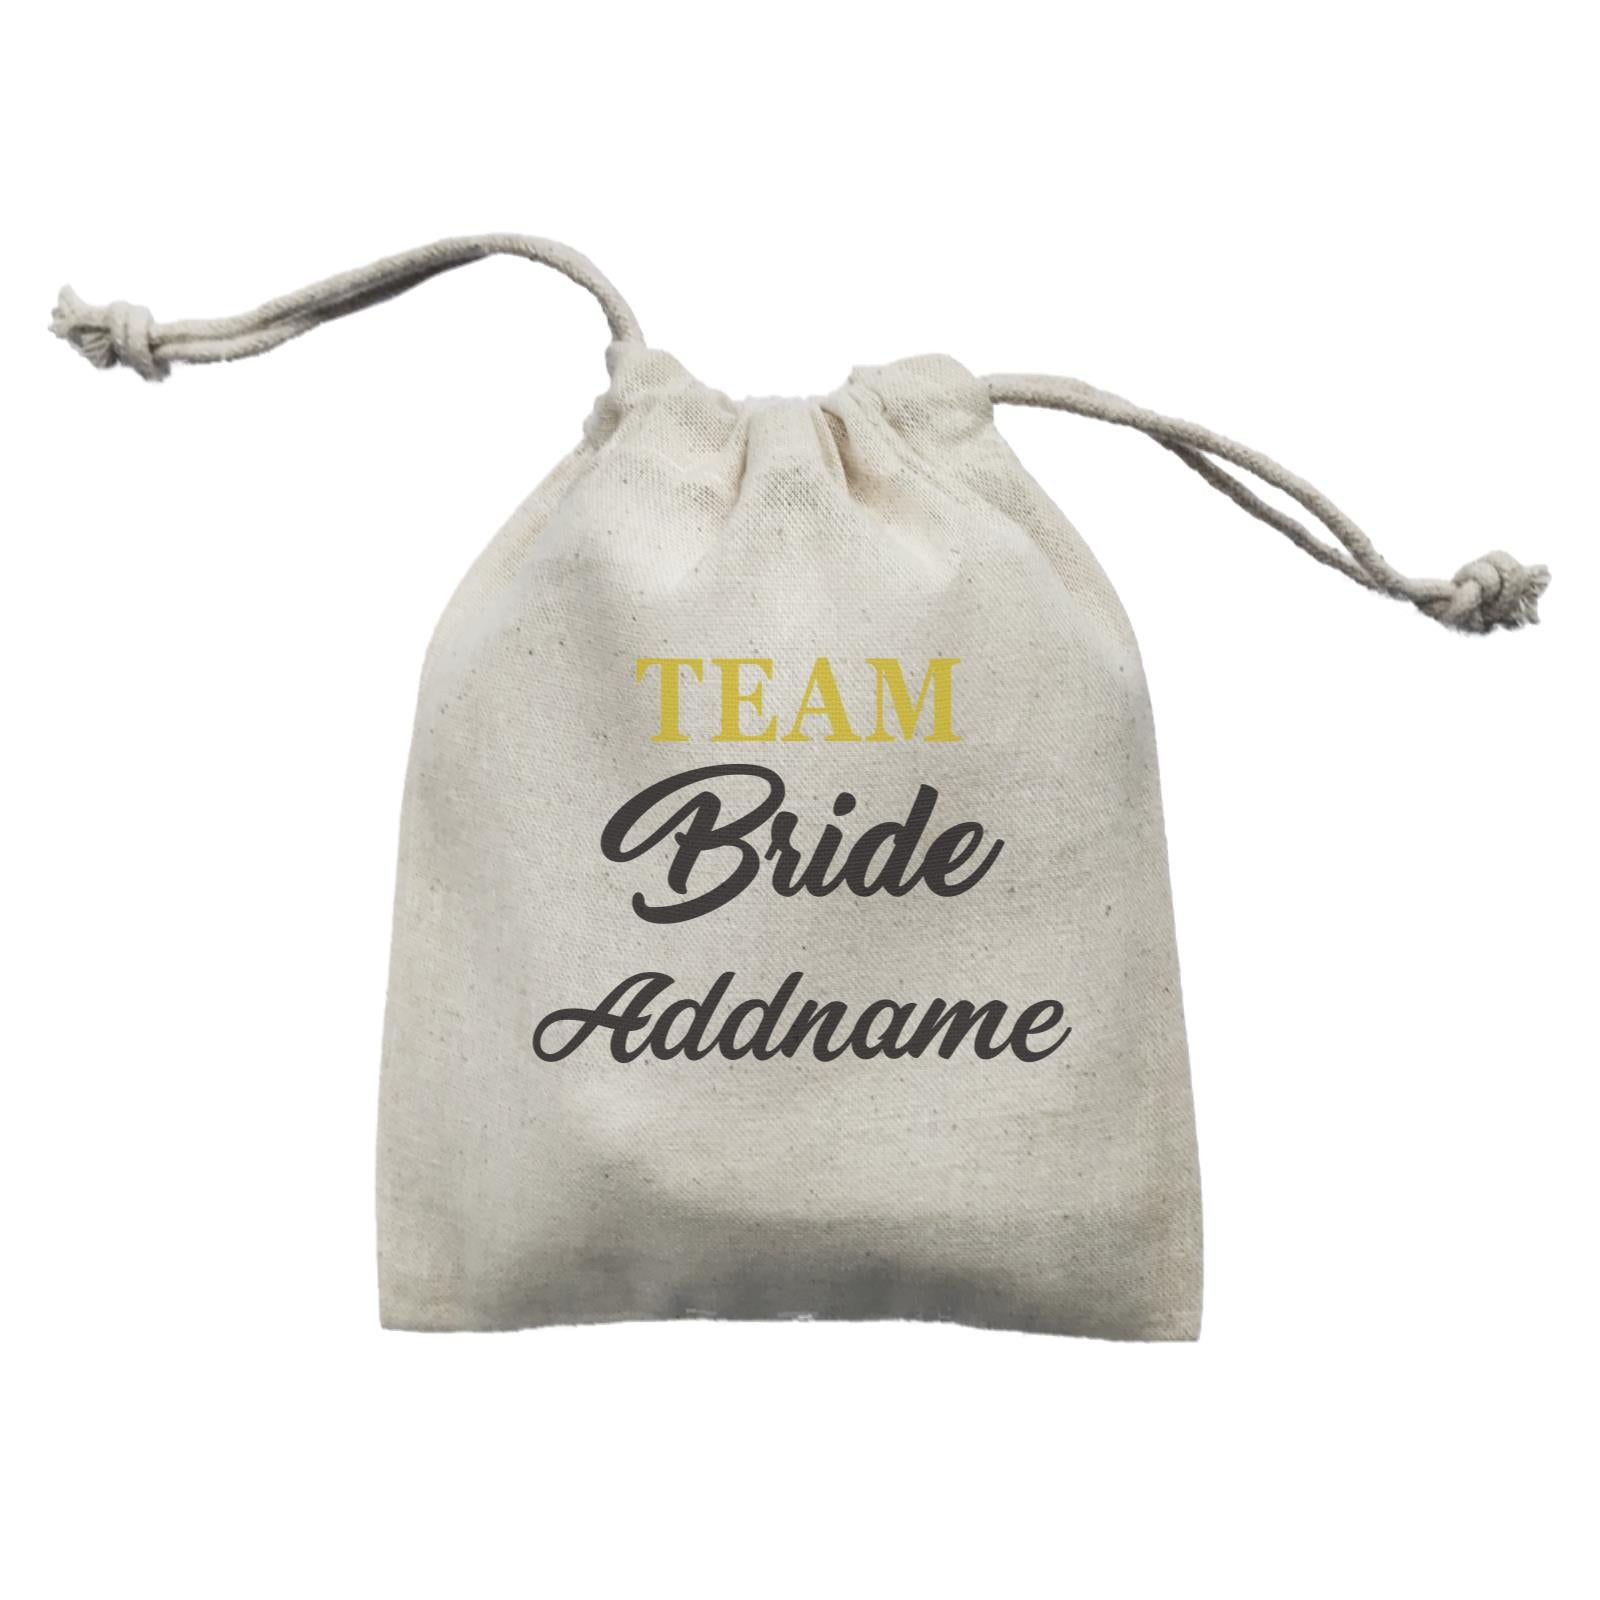 Bridesmaid Team Team Bride Addname Mini Accessories Mini Pouch